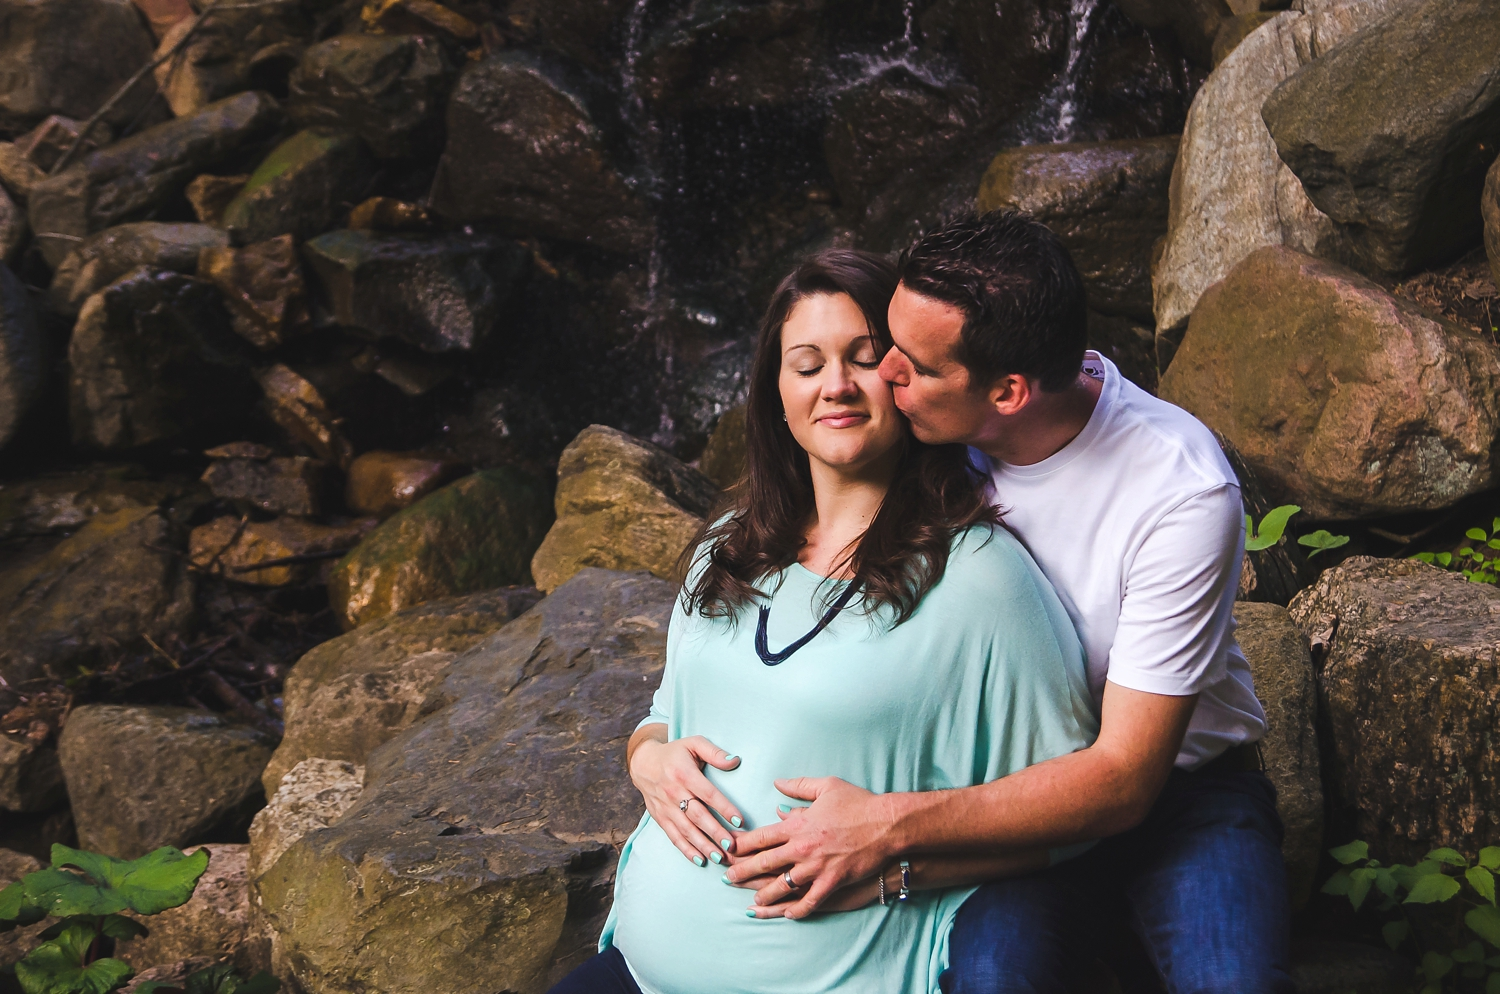 Mom and dad pose for maternity pictures by a waterfall.